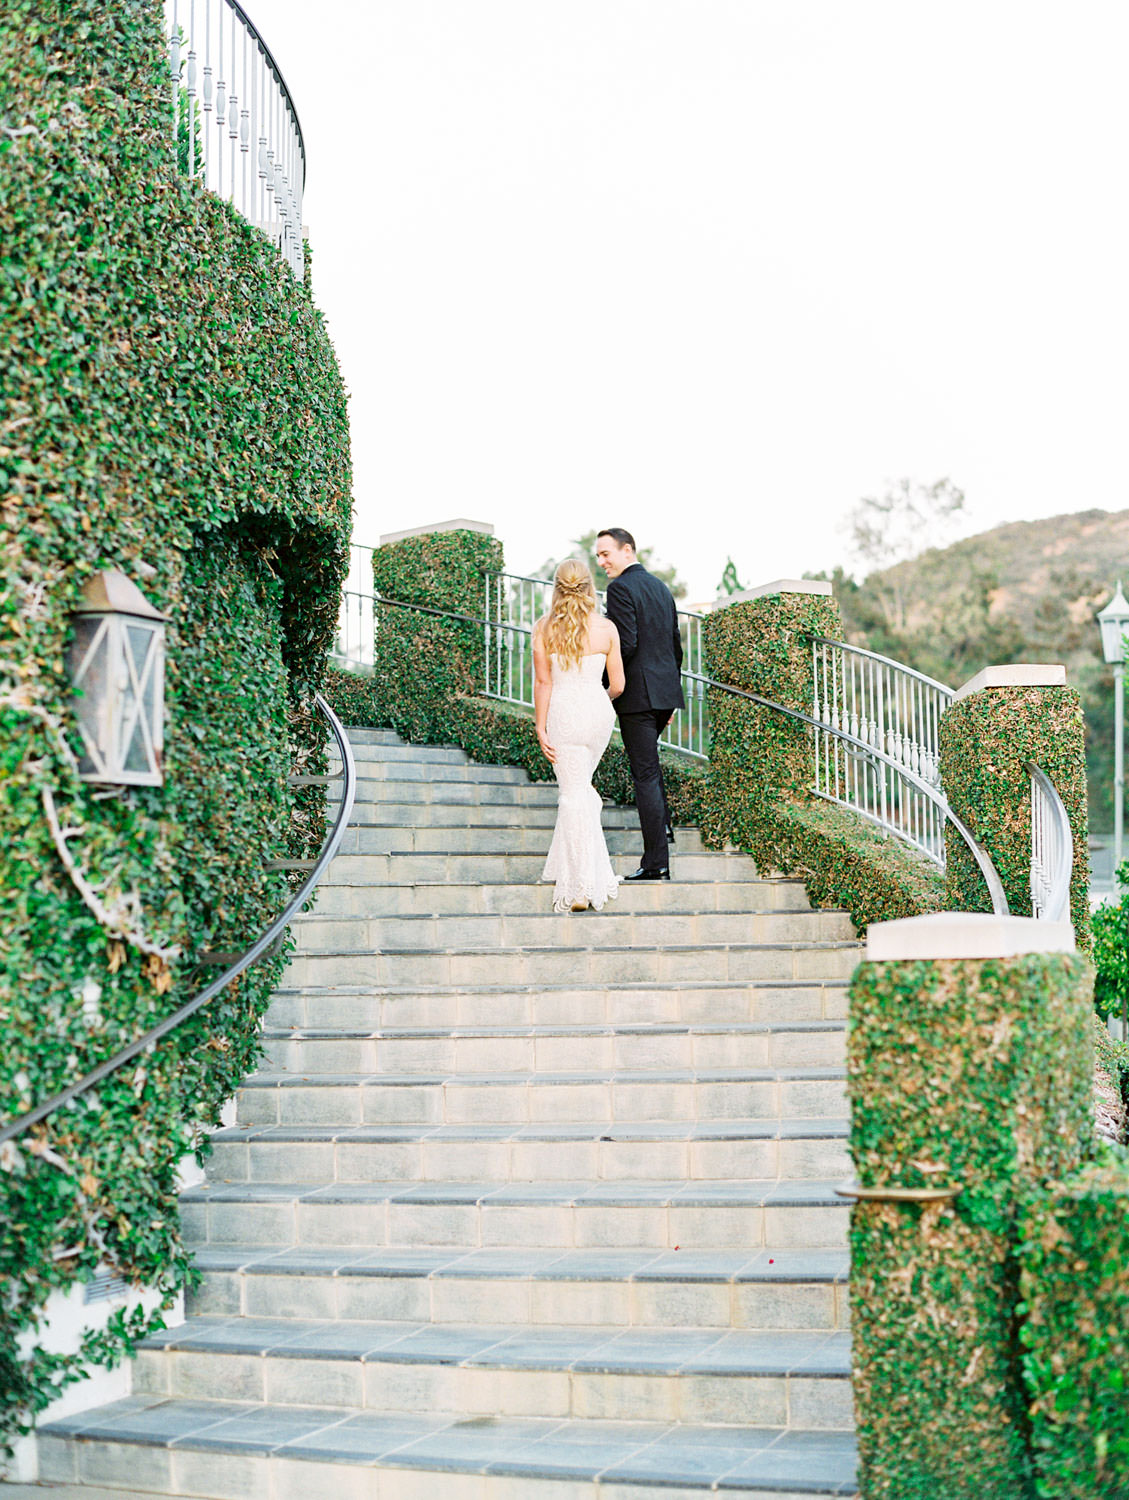 Film photo of bride and groom walking up stairs of an ivy-covered building. Bride wearing a Galia Lahav Gala gown with a sweetheart neckline. Del Mar Country Club Wedding by Cavin Elizabeth Photography